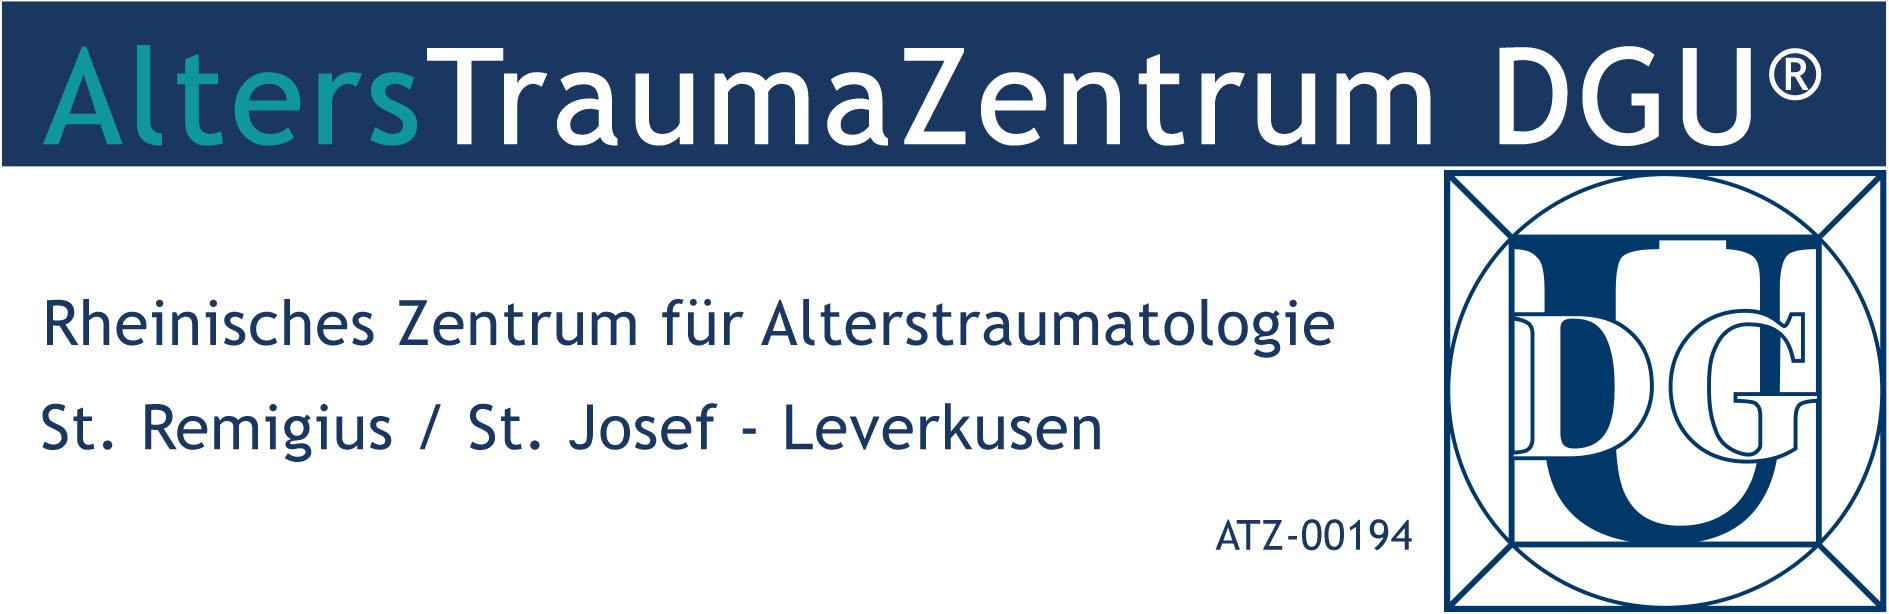 Logo Alterstraumazentrum DGU